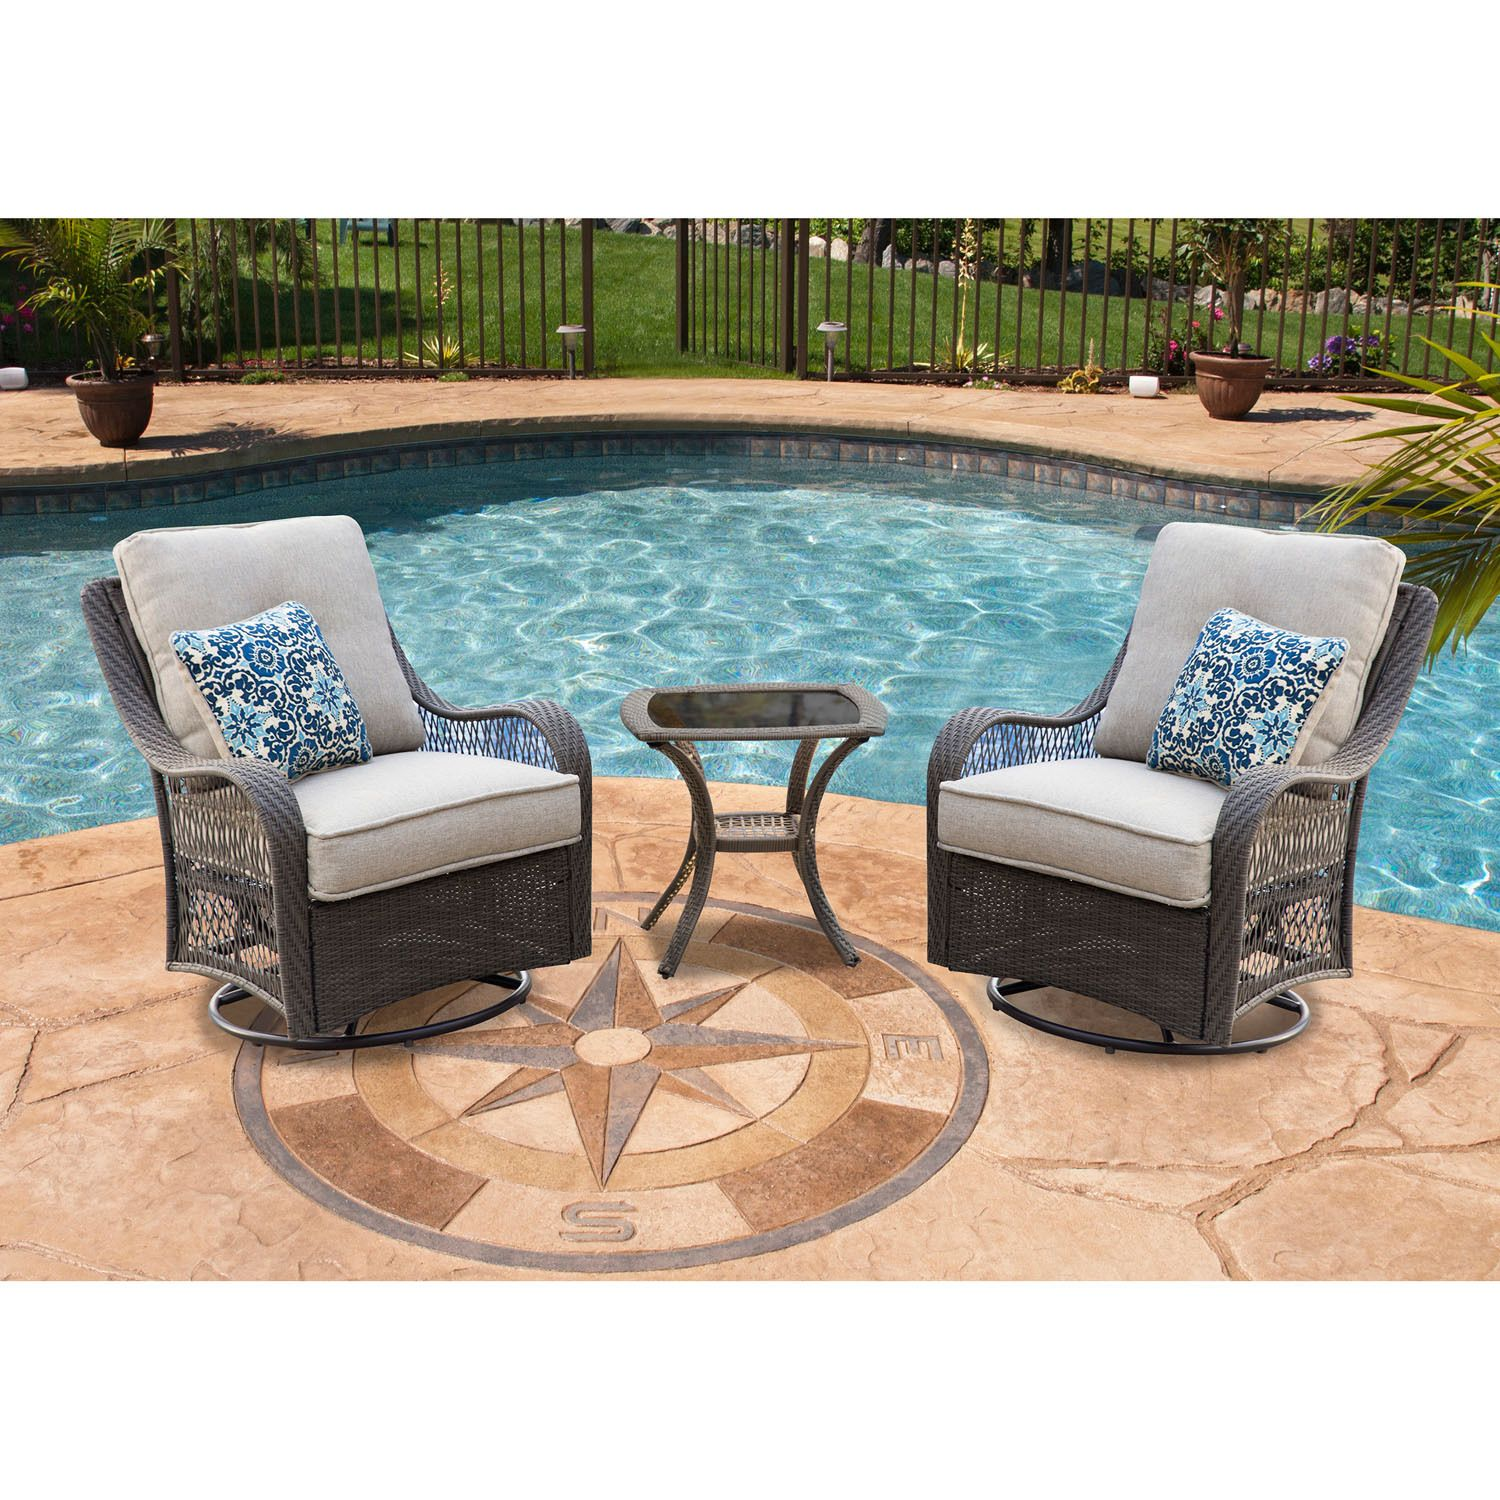 Hanover Outdoor Orleans 3-piece Swivel Rocking Chat Set in Lining